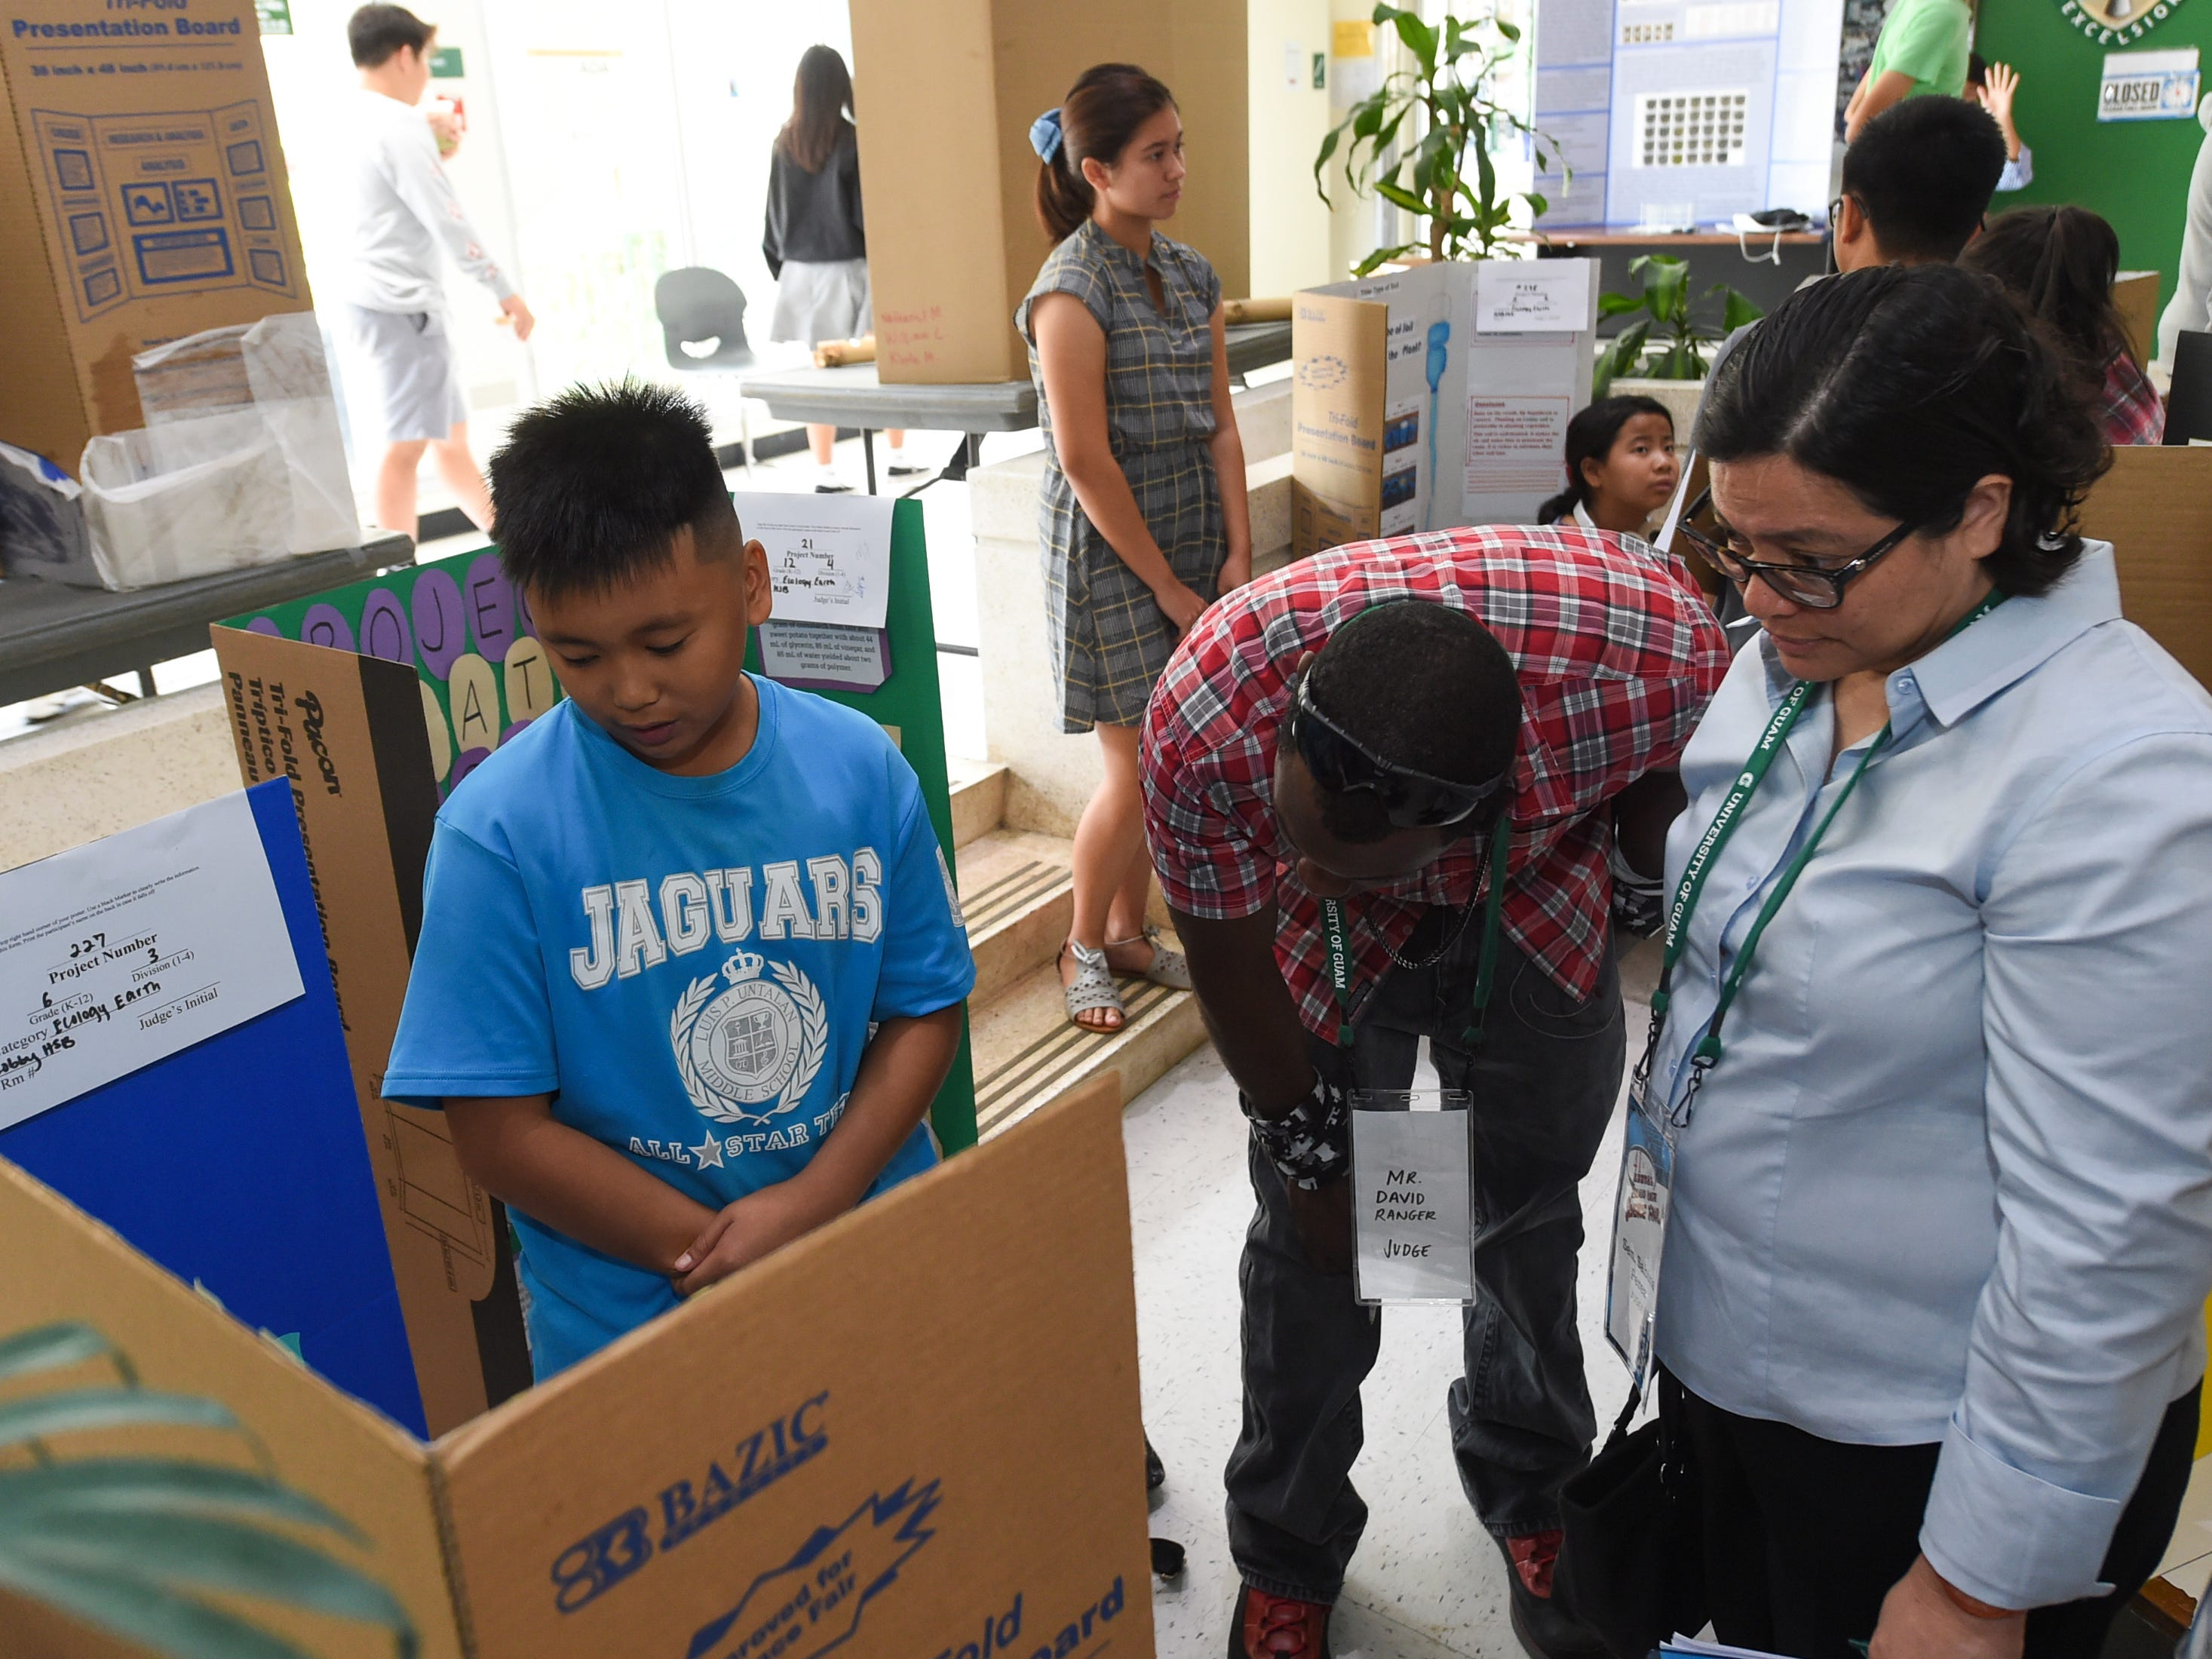 Sixth grader James Ceria, 11, explains his project to judges David Ranger and Sen. Sabina Perez during the 41st Annual Islandwide Science Fair at the University of Guam in Mangilao, May 11, 2019.